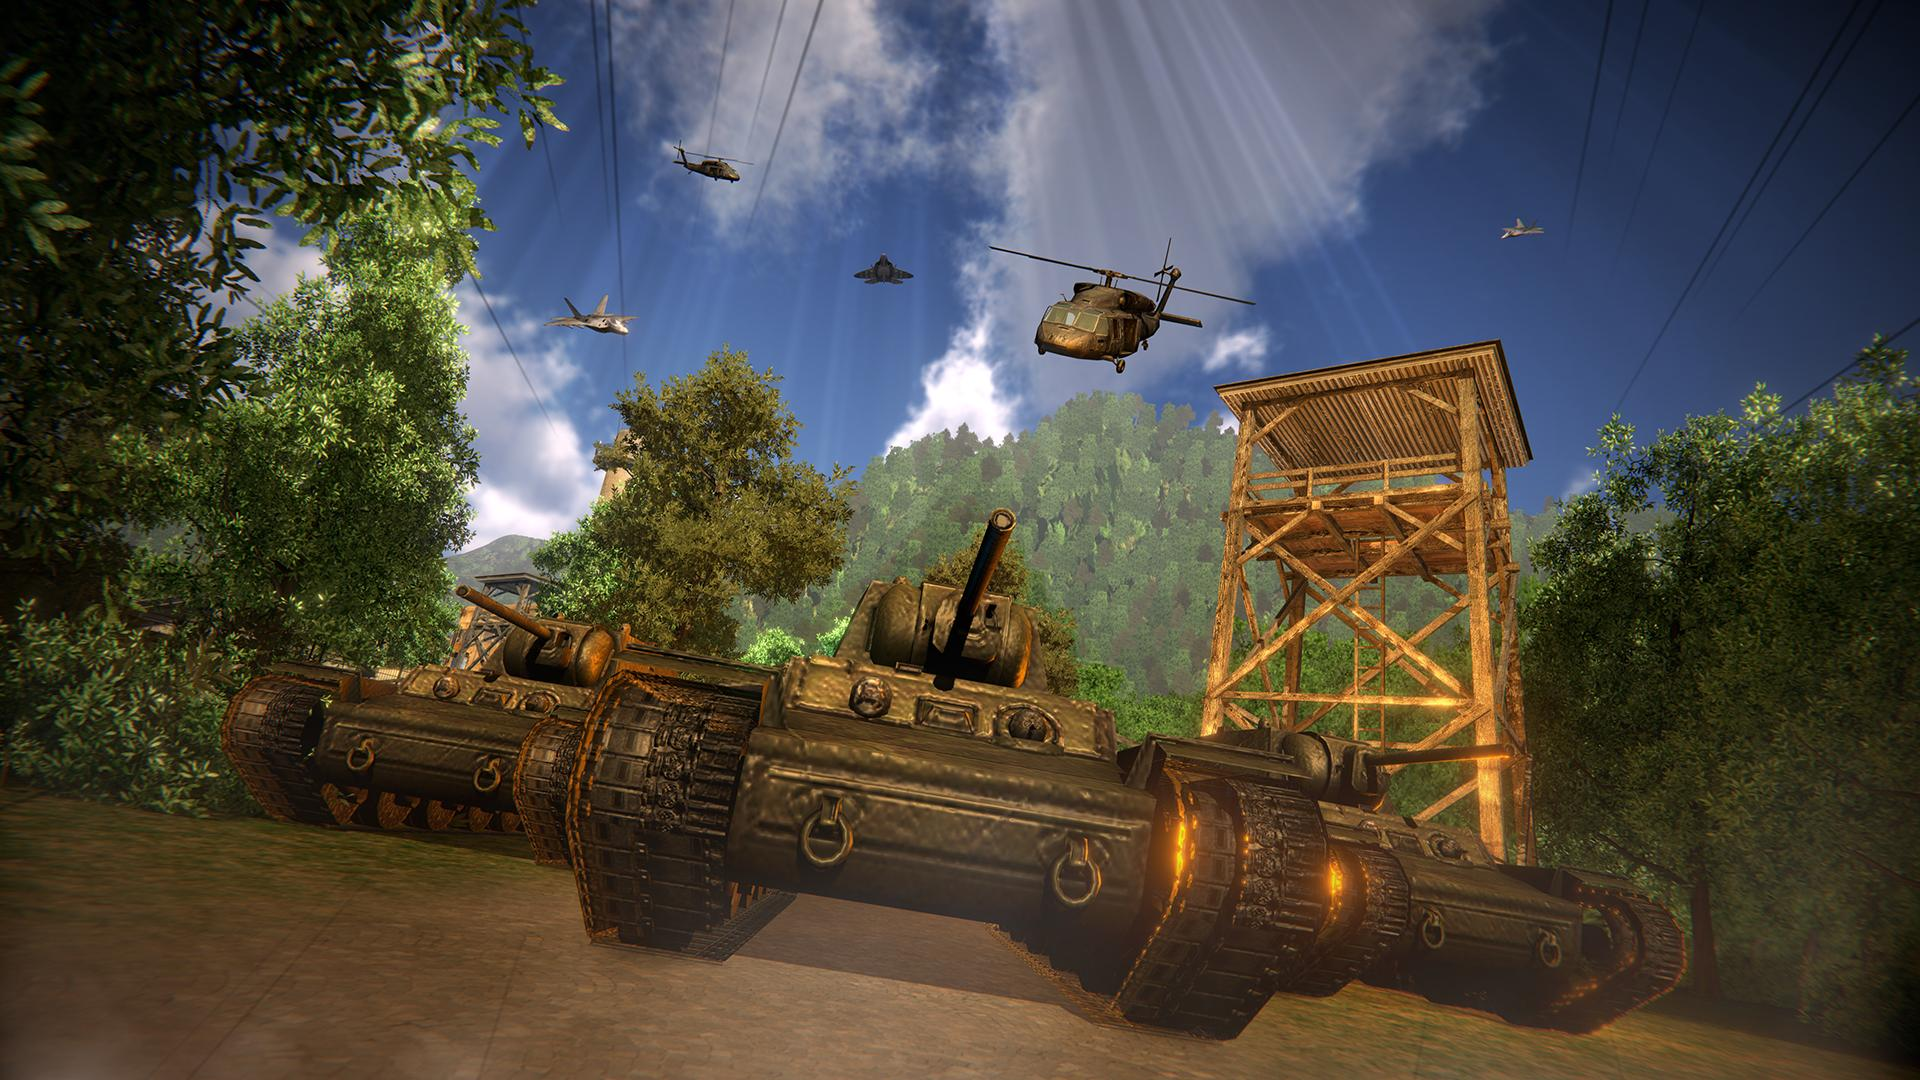 Tank Games 2020 Free Tank Battle Army Combat Games 1.3 Screenshot 15